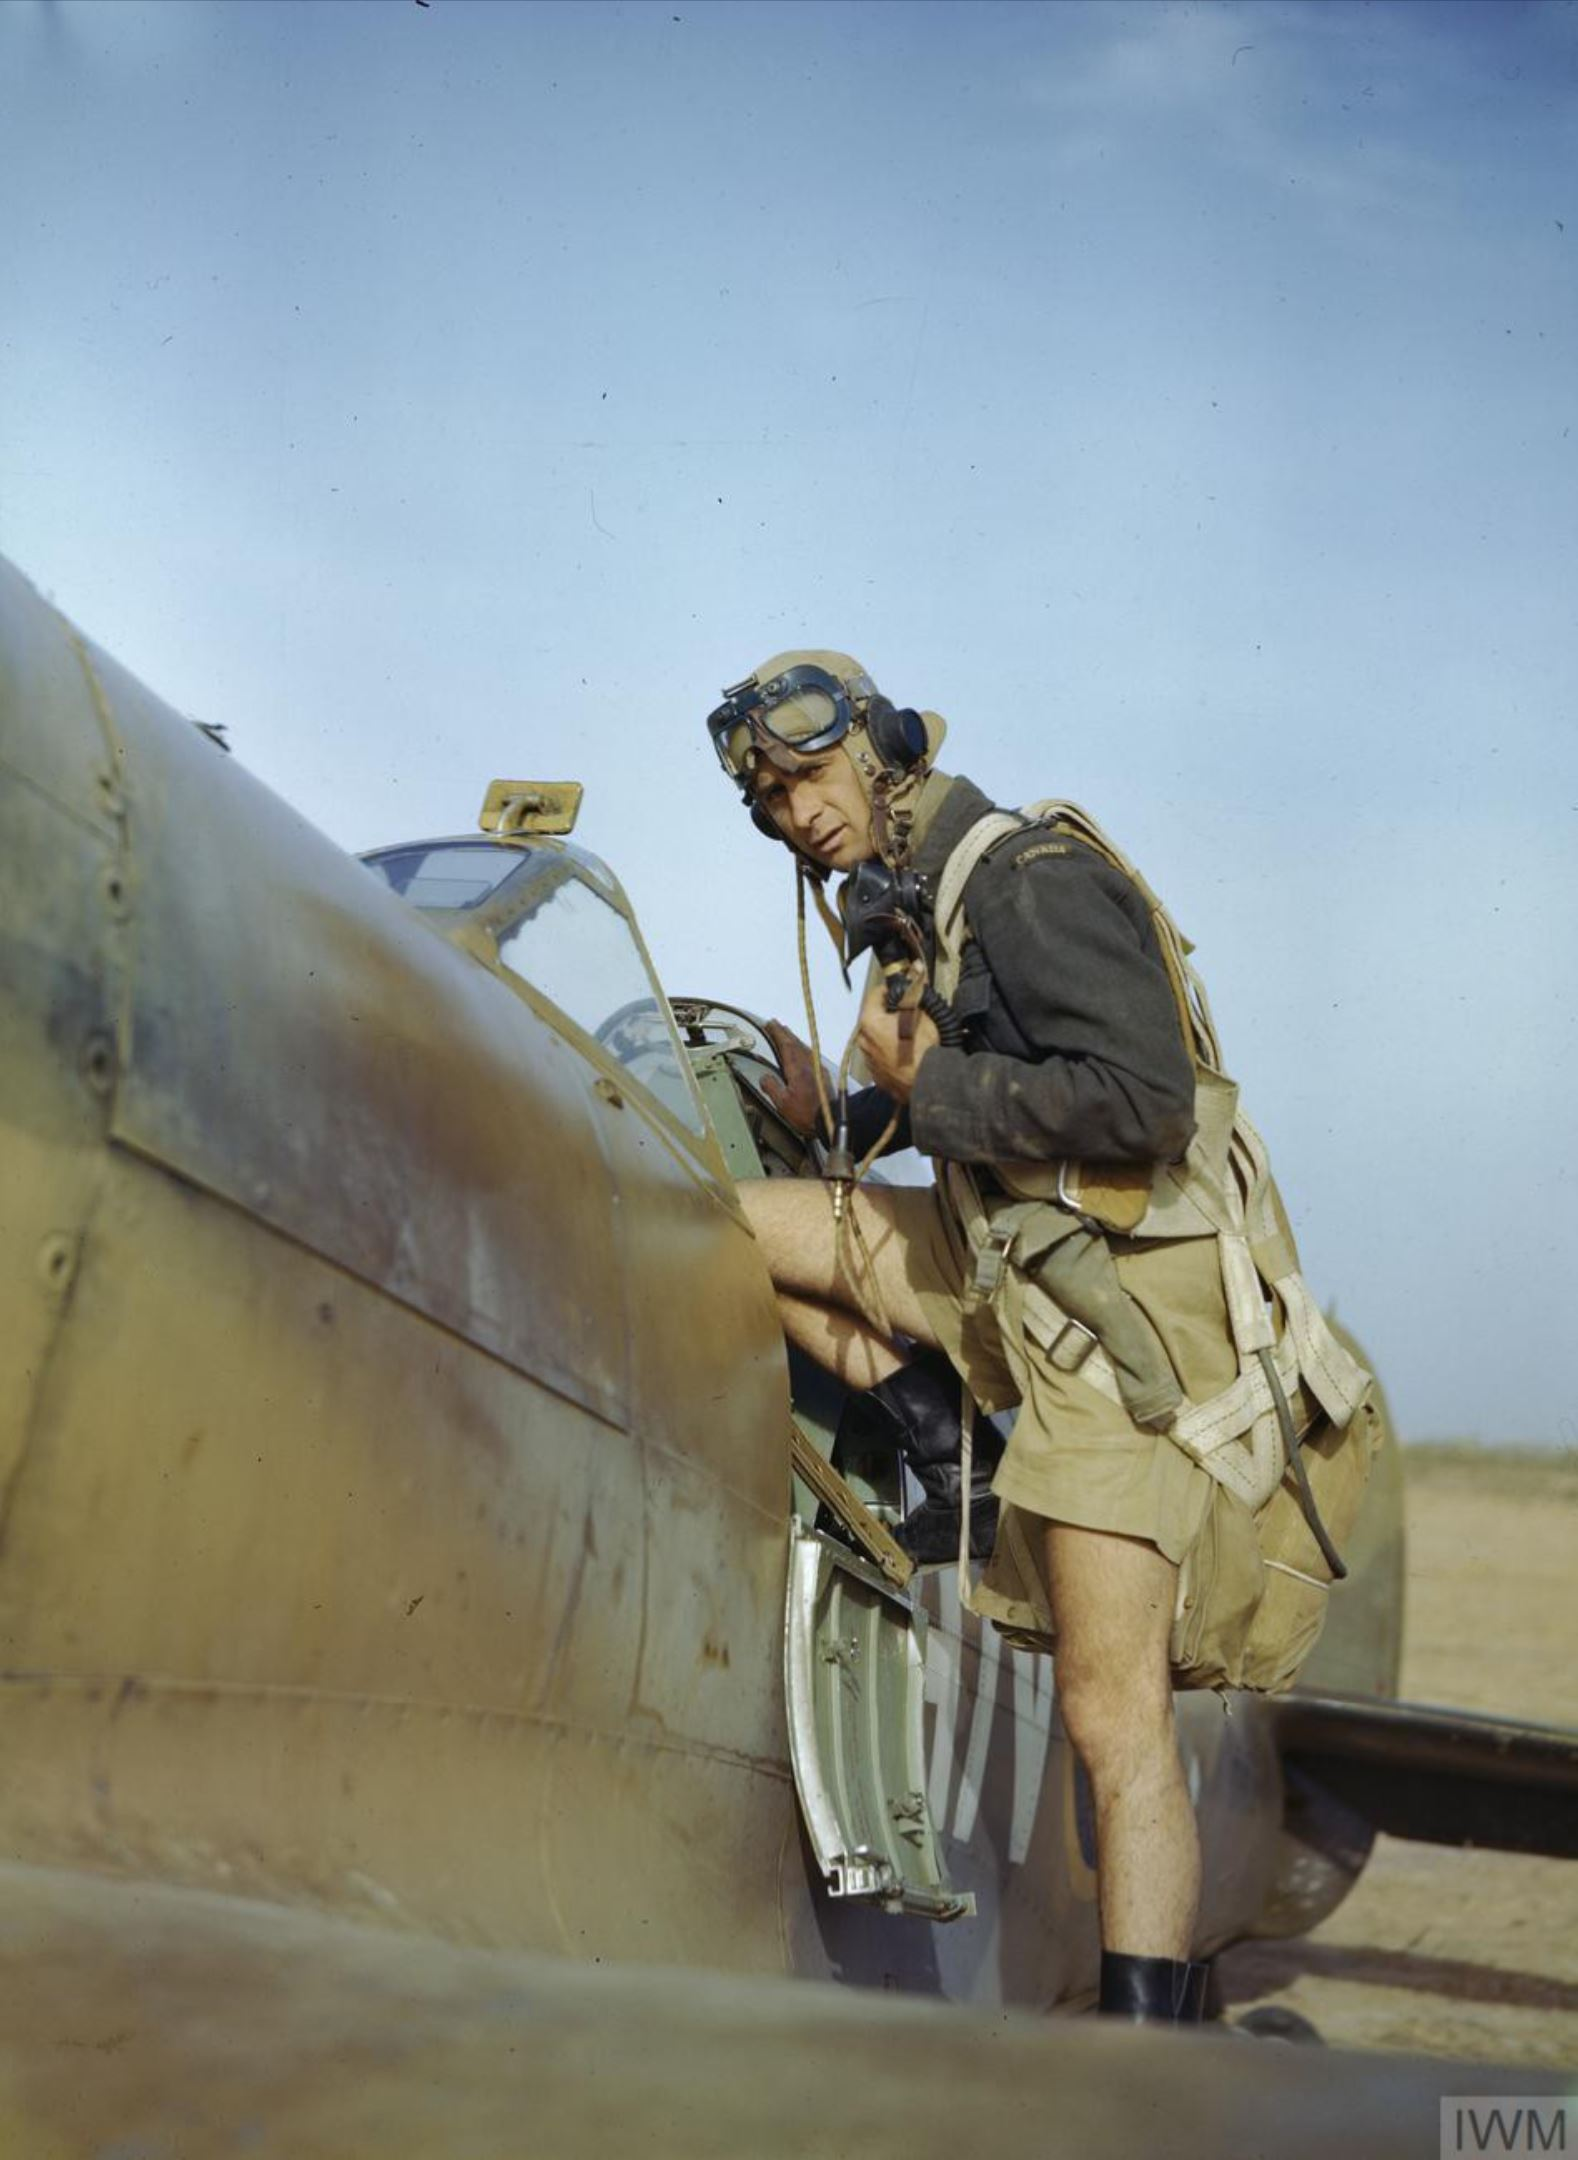 Aircrew RCAF 417Sqn pilot about to embark on a mission Goubrine Tunisia April 1943 IWM TR832